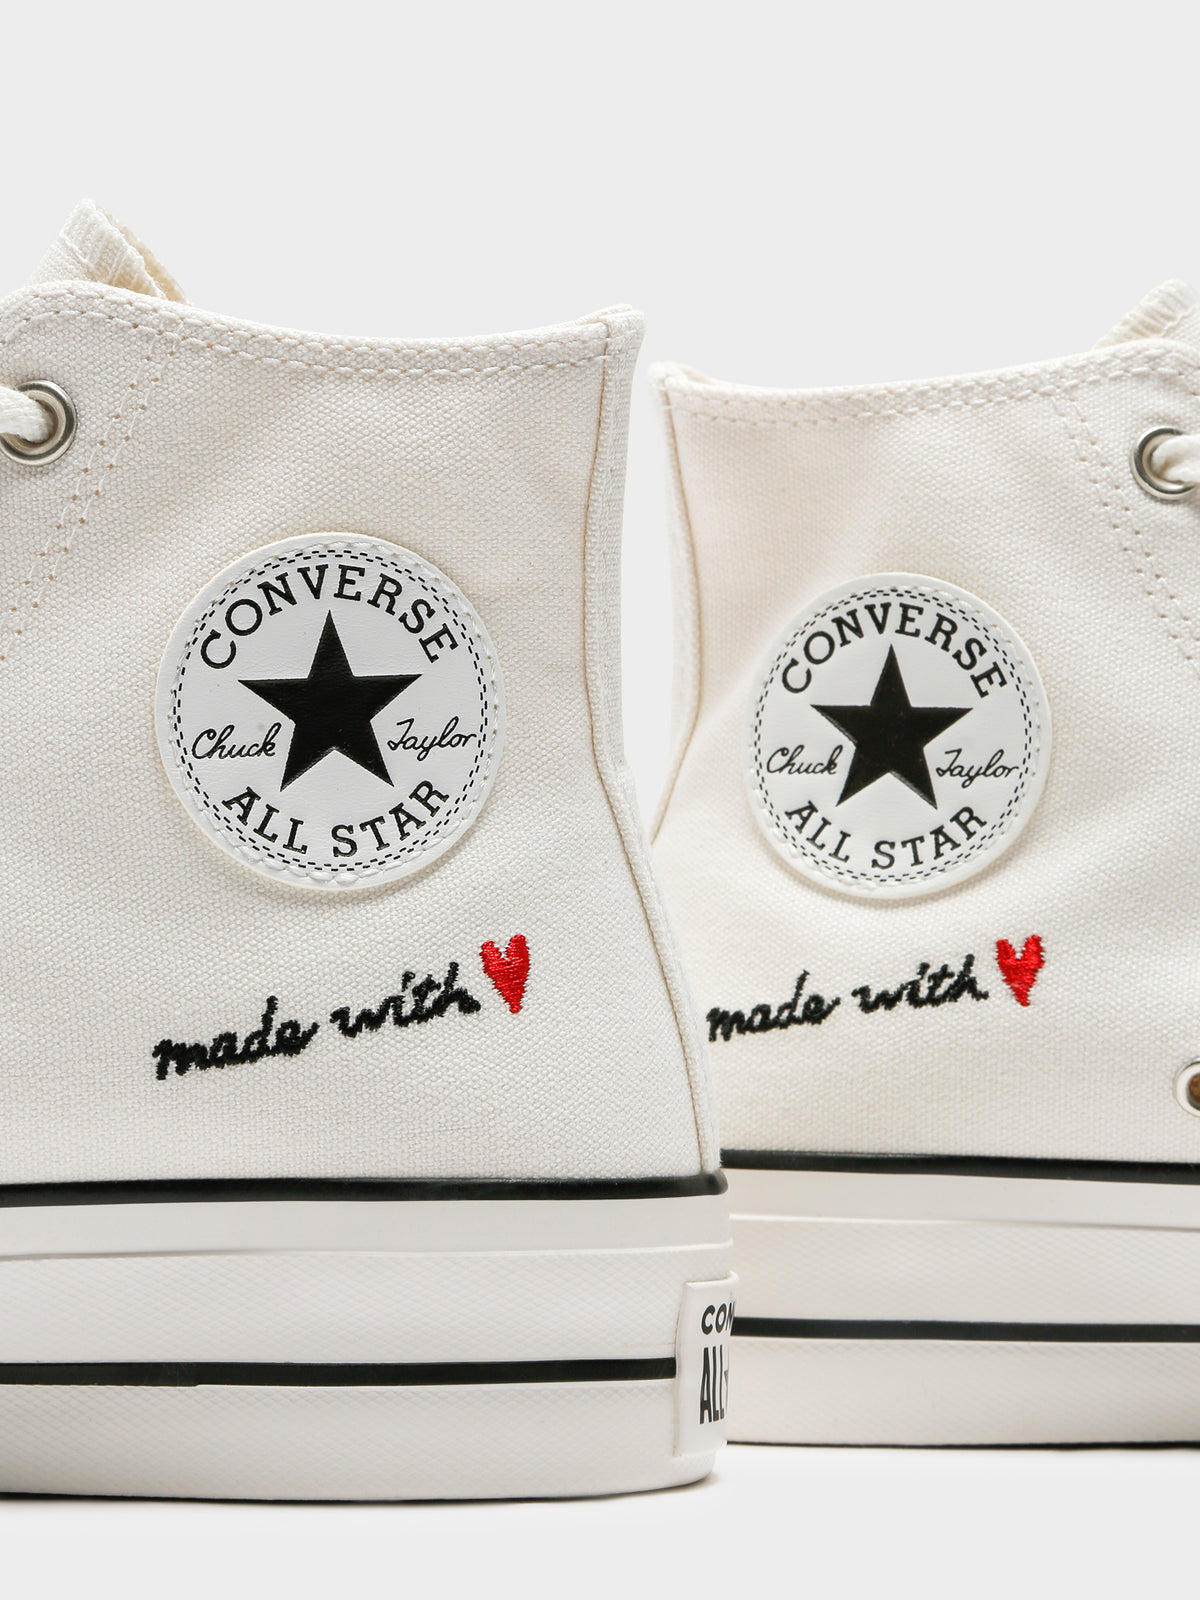 Womens Made With Love Platform Chuck Taylor All Star High Top Sneakers in Vintage White